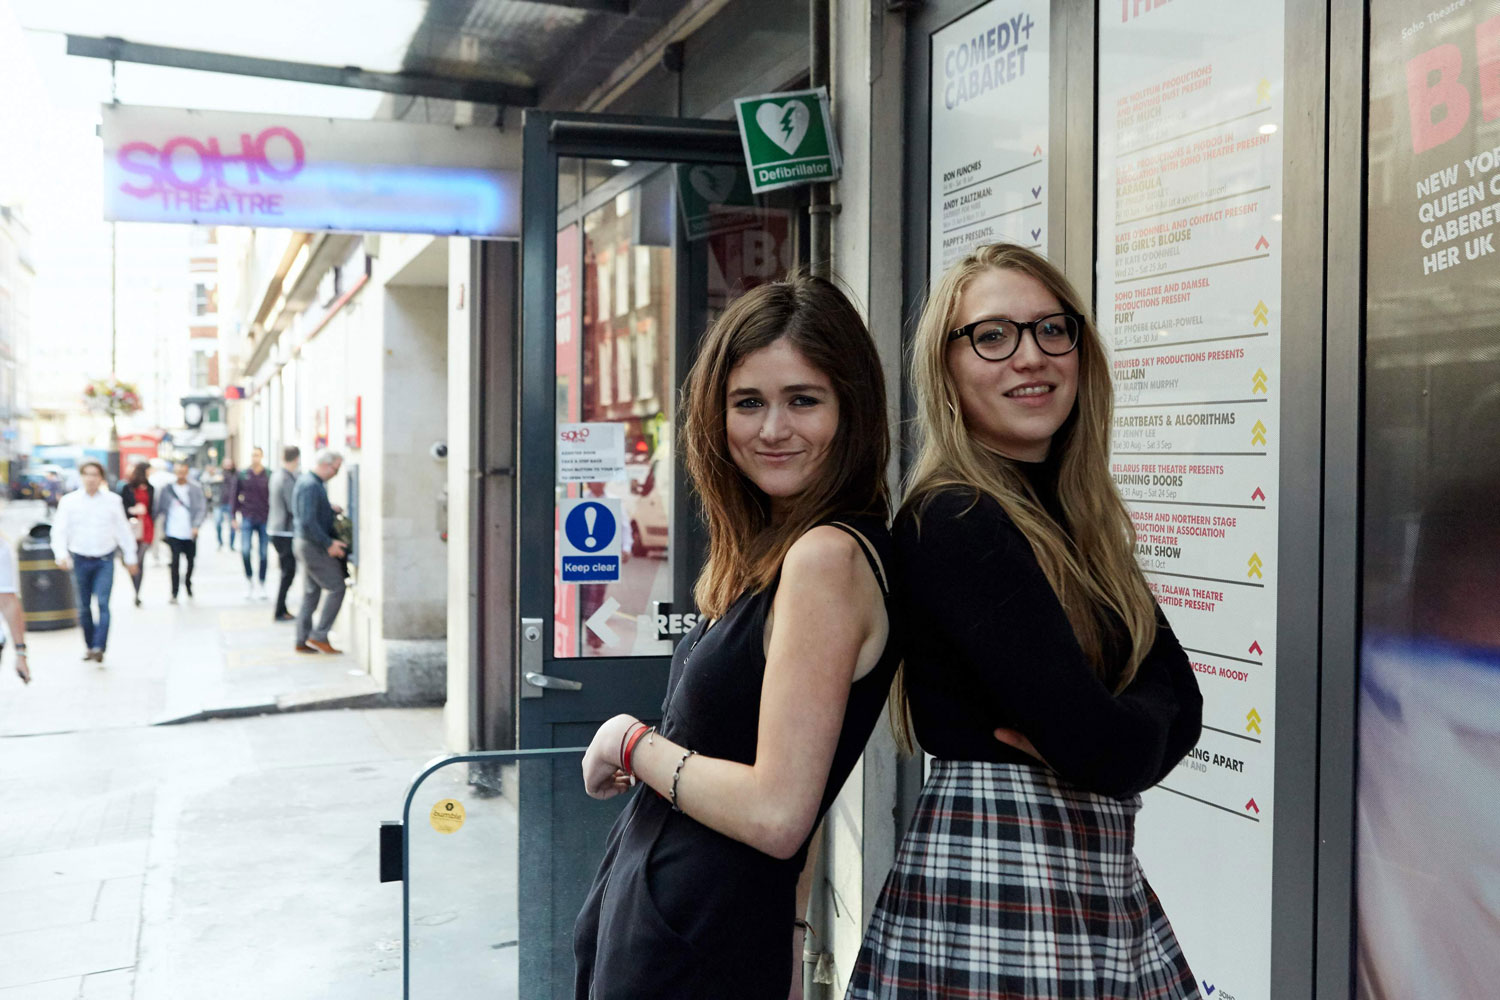 Hannah and Kitty by The Other Richard.